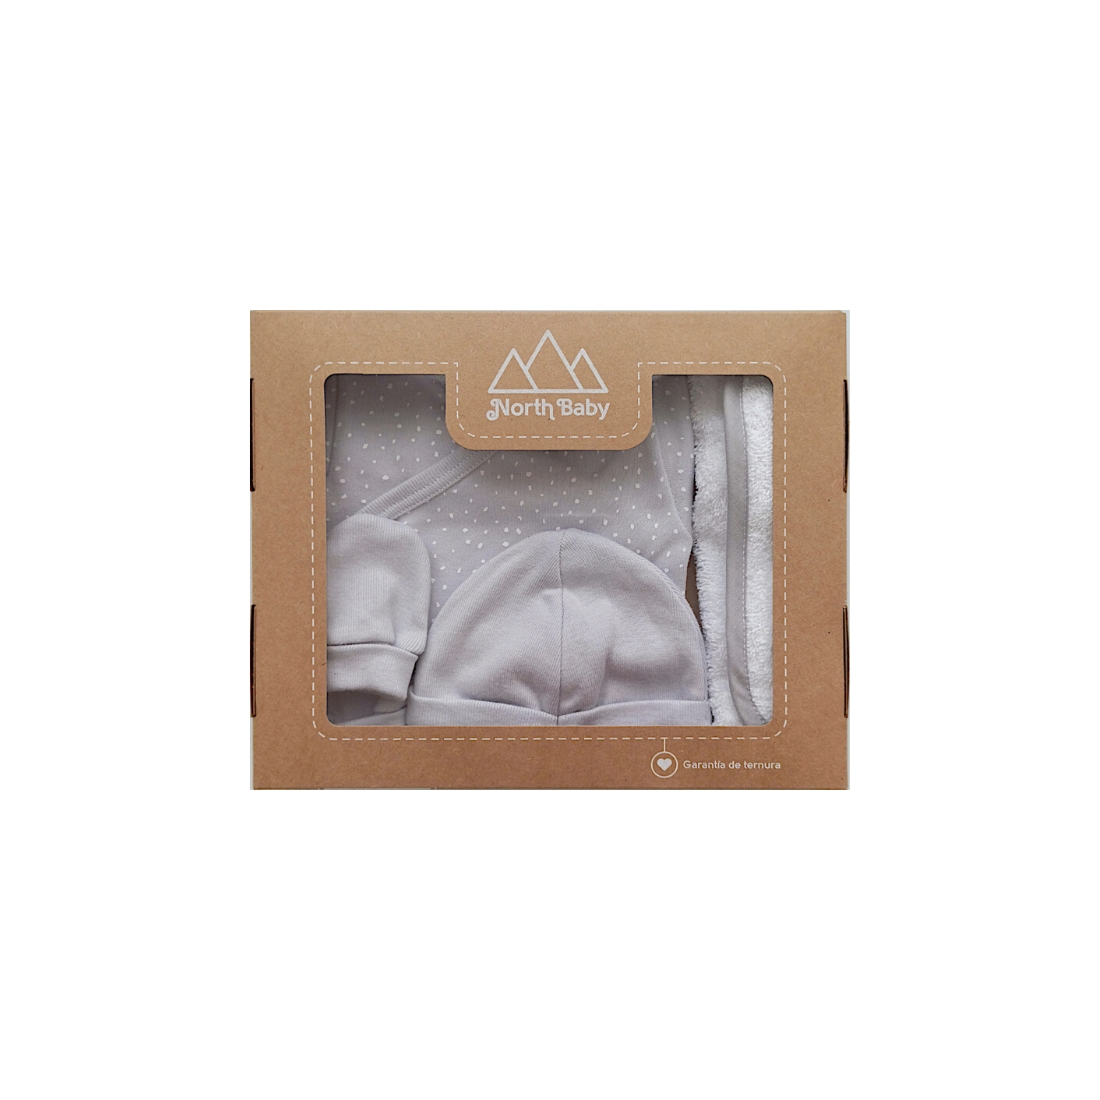 NB301CGRET0 | Caja Body estampado gris